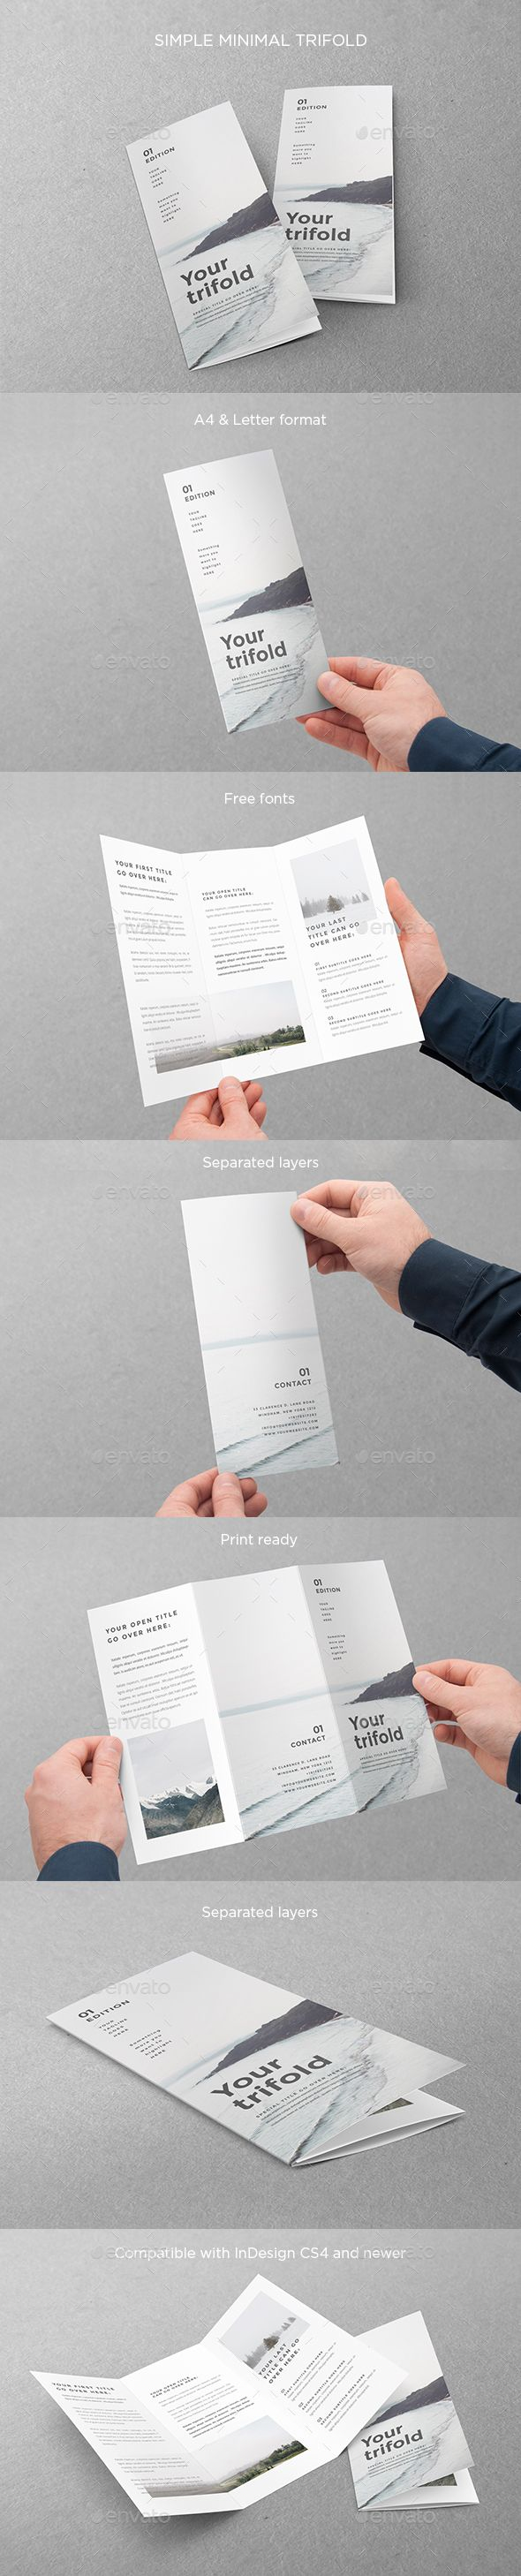 Simple Minimal Trifold Brochure Template InDesign INDD. Download here: https://graphicriver.net/item/simple-minimal-trifold/17604343?ref=ksioks